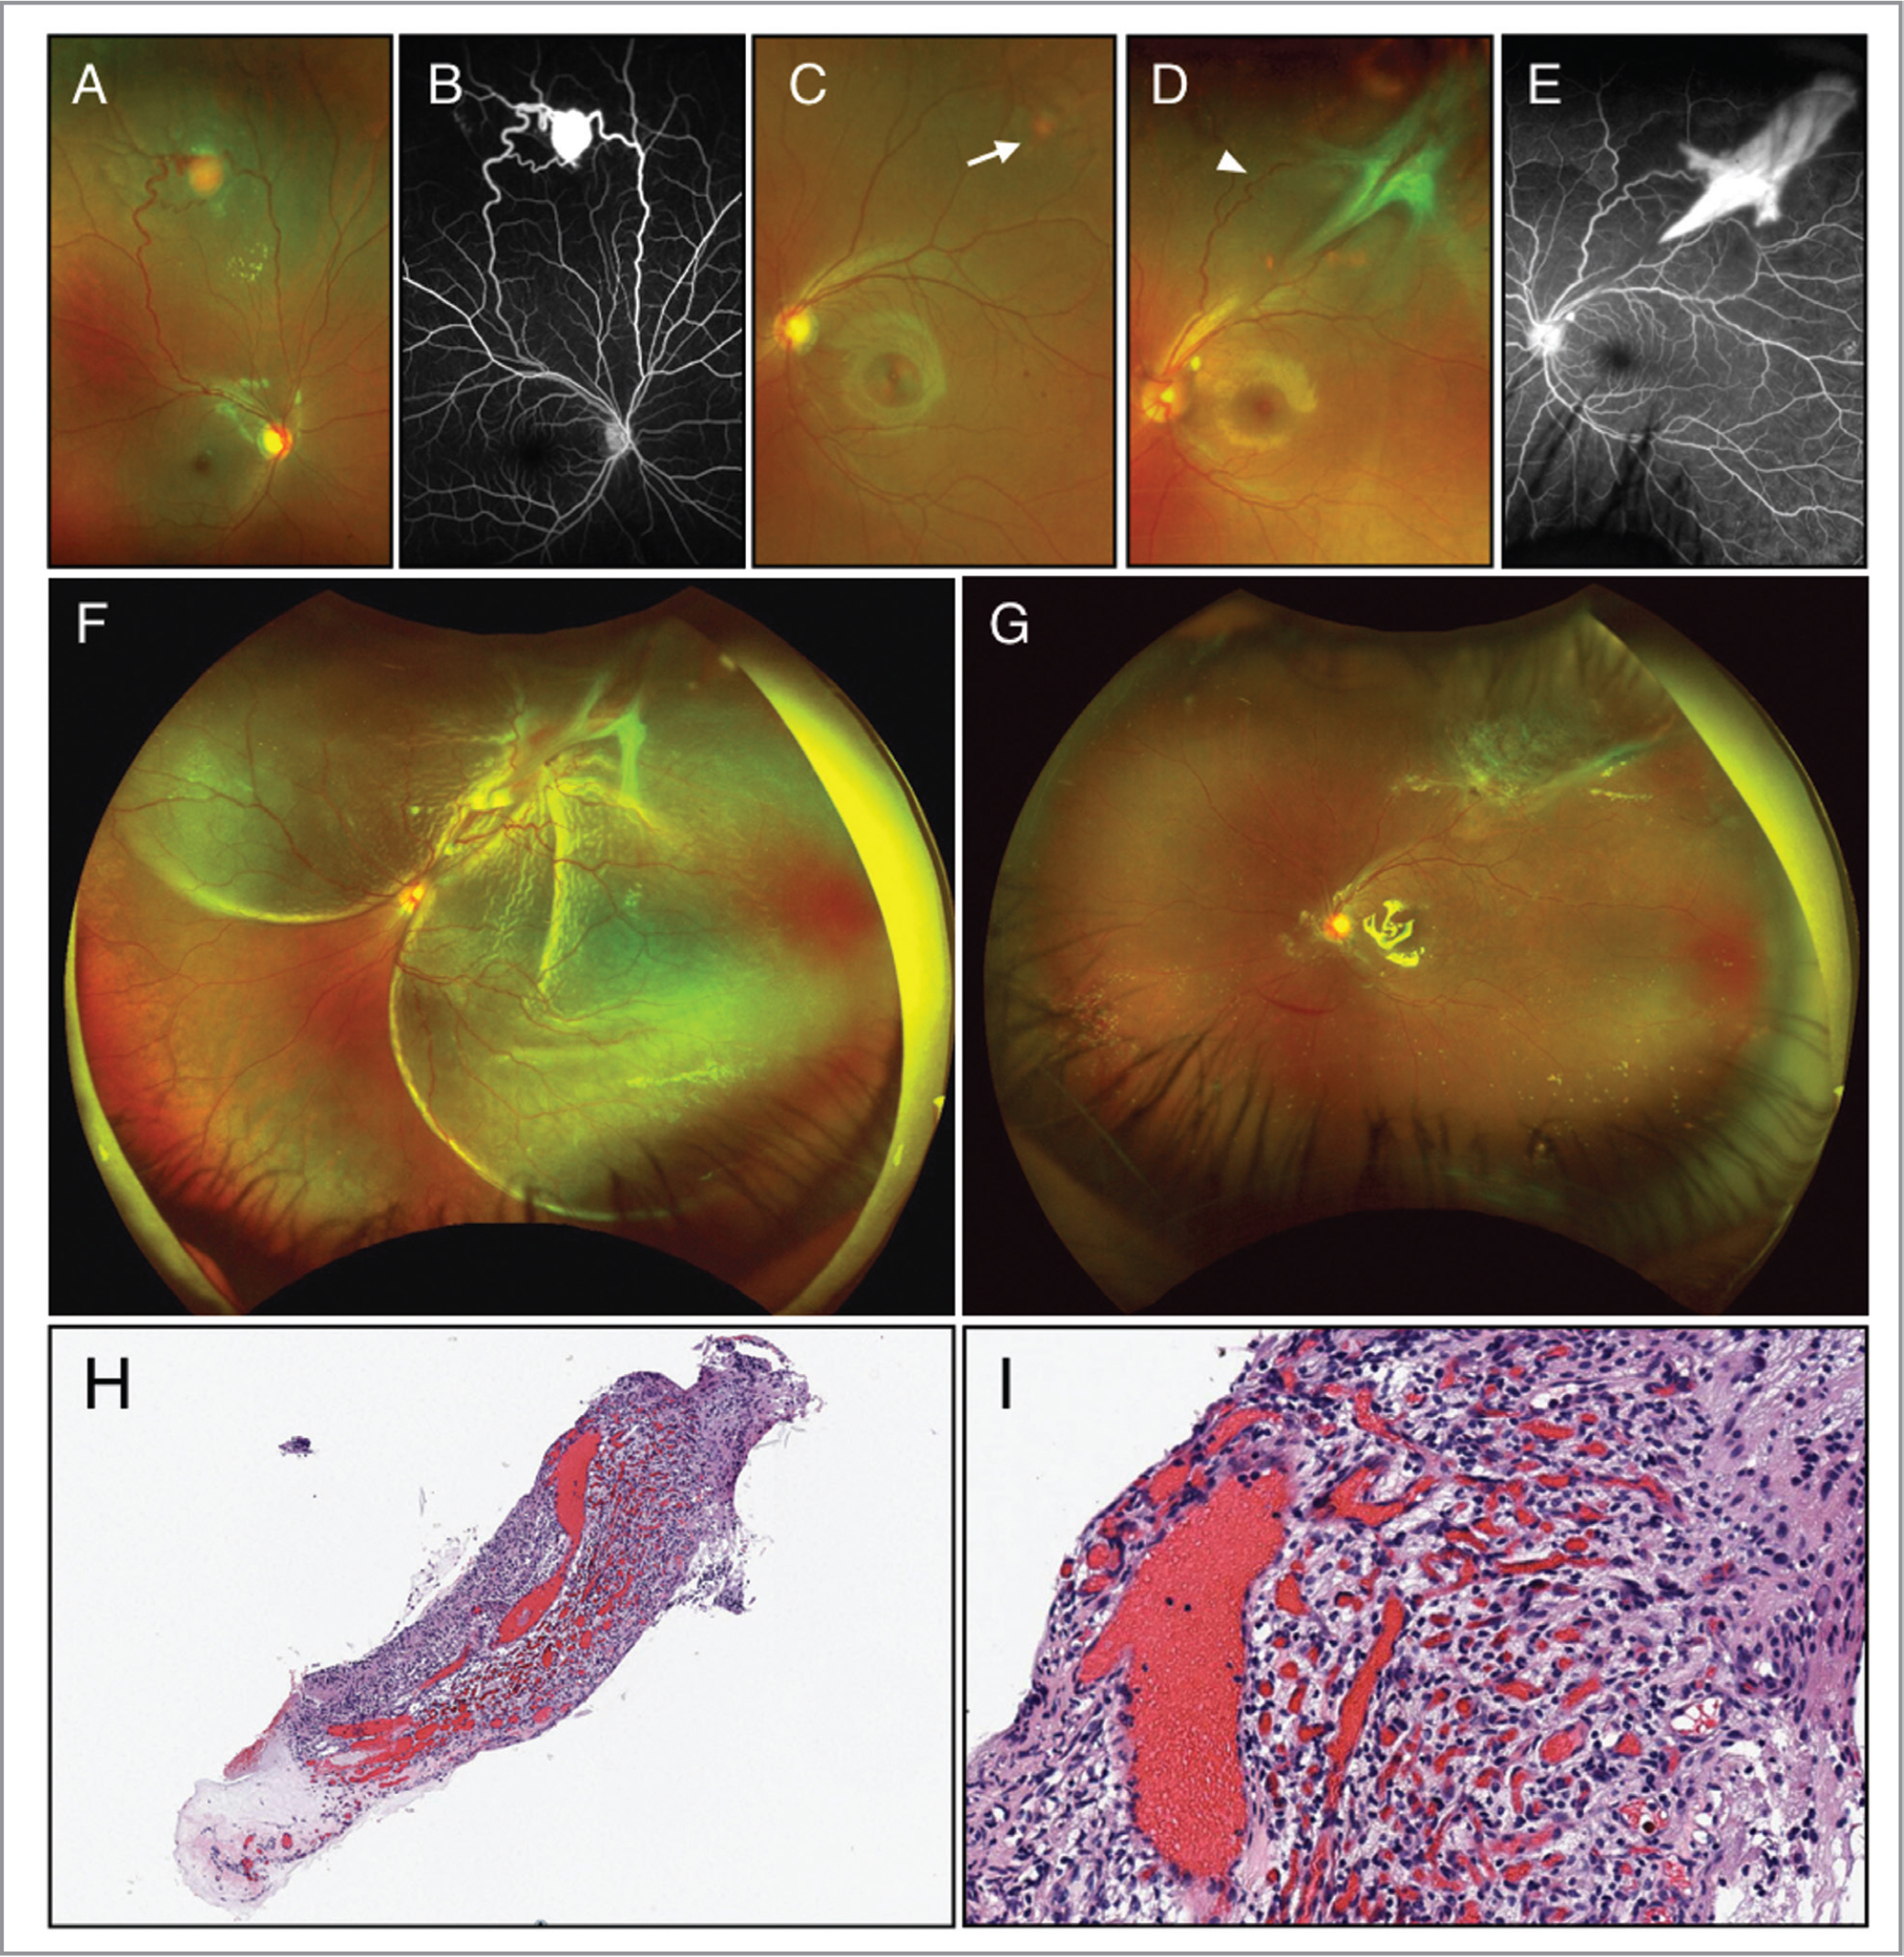 (A) Ultra-widefield imaging of the right fundus demonstrating the peripheral retinal capillary hemangioblastoma (RCH) located on the superior quadrant. (B) Fluorescein angiography depicting a marked filling pattern between a feeder artery and draining vein. (C) A small RCH located on the superotemporal quadrant in the left eye (white arrow). (D, E) Enlargement of the angioma in the left eye over 7 months with associated vitreous condensation and contraction. Note the increased vessel tortuosity on superior quadrant (arrowhead). (F) Combined tractional, rhegmatogenous, and exudative retinal detachment in the affected eye. (G) Retina was successfully attached after pars plana vitrectomy surgery combined with scleral buckling and silicone oil injection. (H, I) Histopathologic features of the retinal hemangioblastoma on hematoxylin and eosin stain, which is composed of vacuolated stromal cells and blood vessels. There are elements of chronic stromal inflammation (H, ×10; I, ×20).